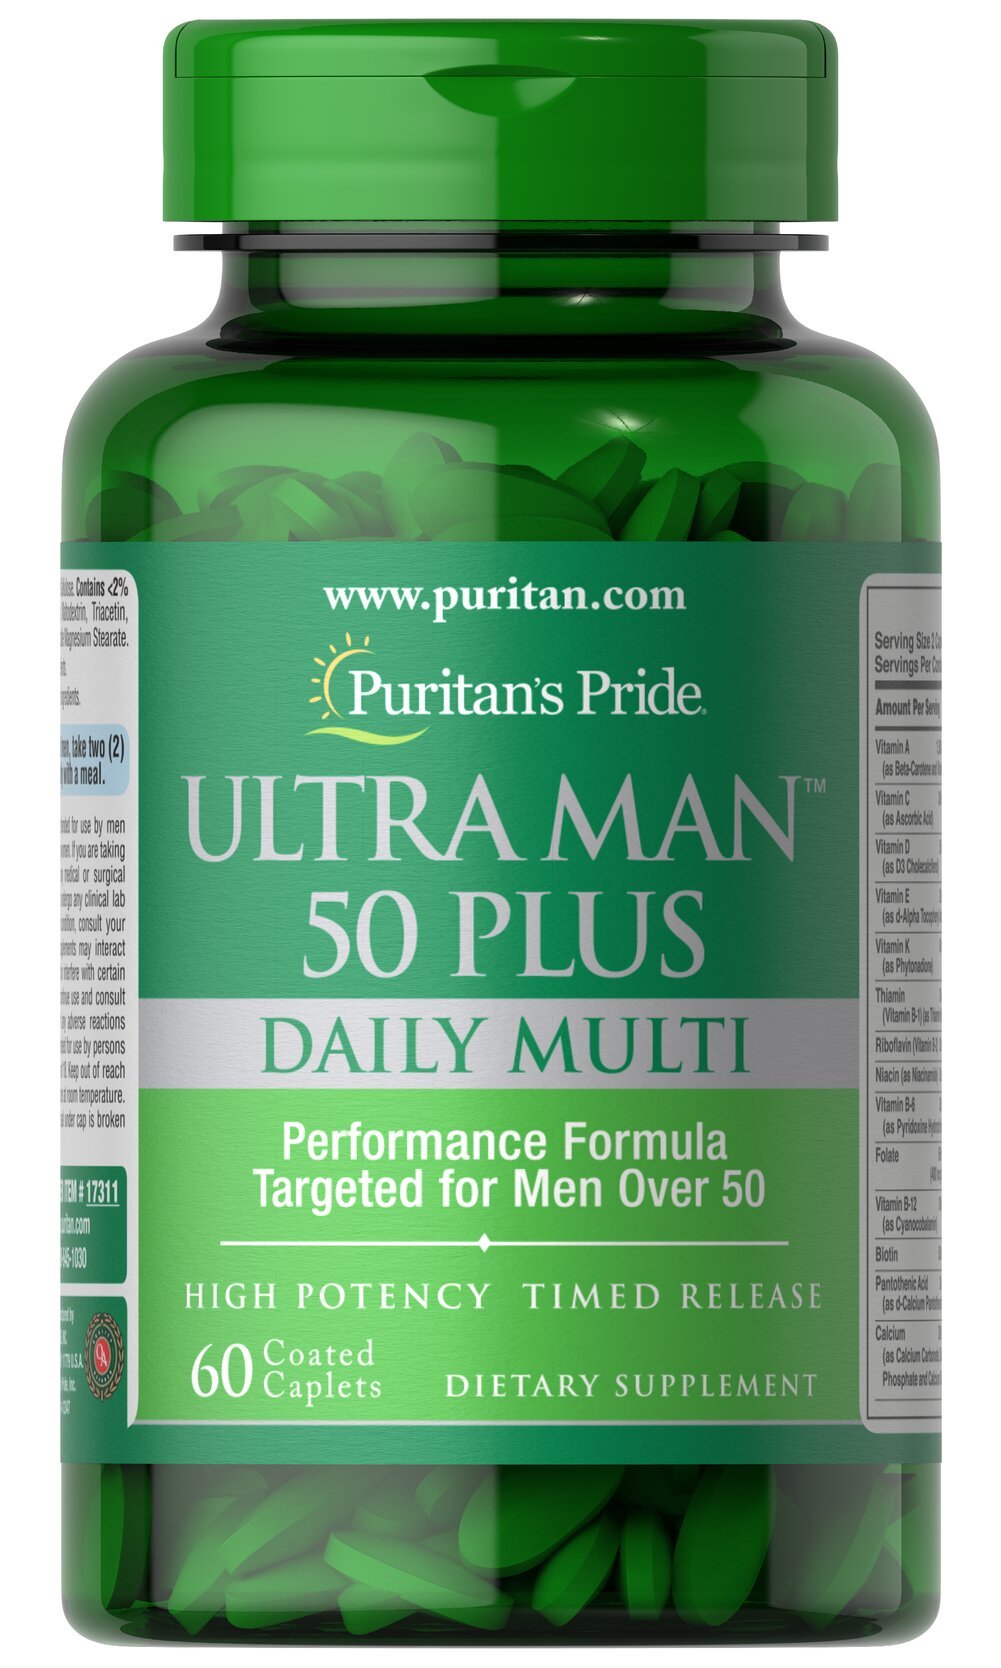 Ultra Vita Man™ 50 Plus • High performance multi with over 50 important nutrients for men's health**<br />• Created especially for men over 50<br />• Unlike other multis, Ultra Vita Man 50 Plus is enhanced with vital nutrients not commonly found in the diet.<br />• Just two coated caplets a day<br />• Features Zinc, an important mineral that contributes to normal semen production and sexual health** 60 Caplets  $6.79